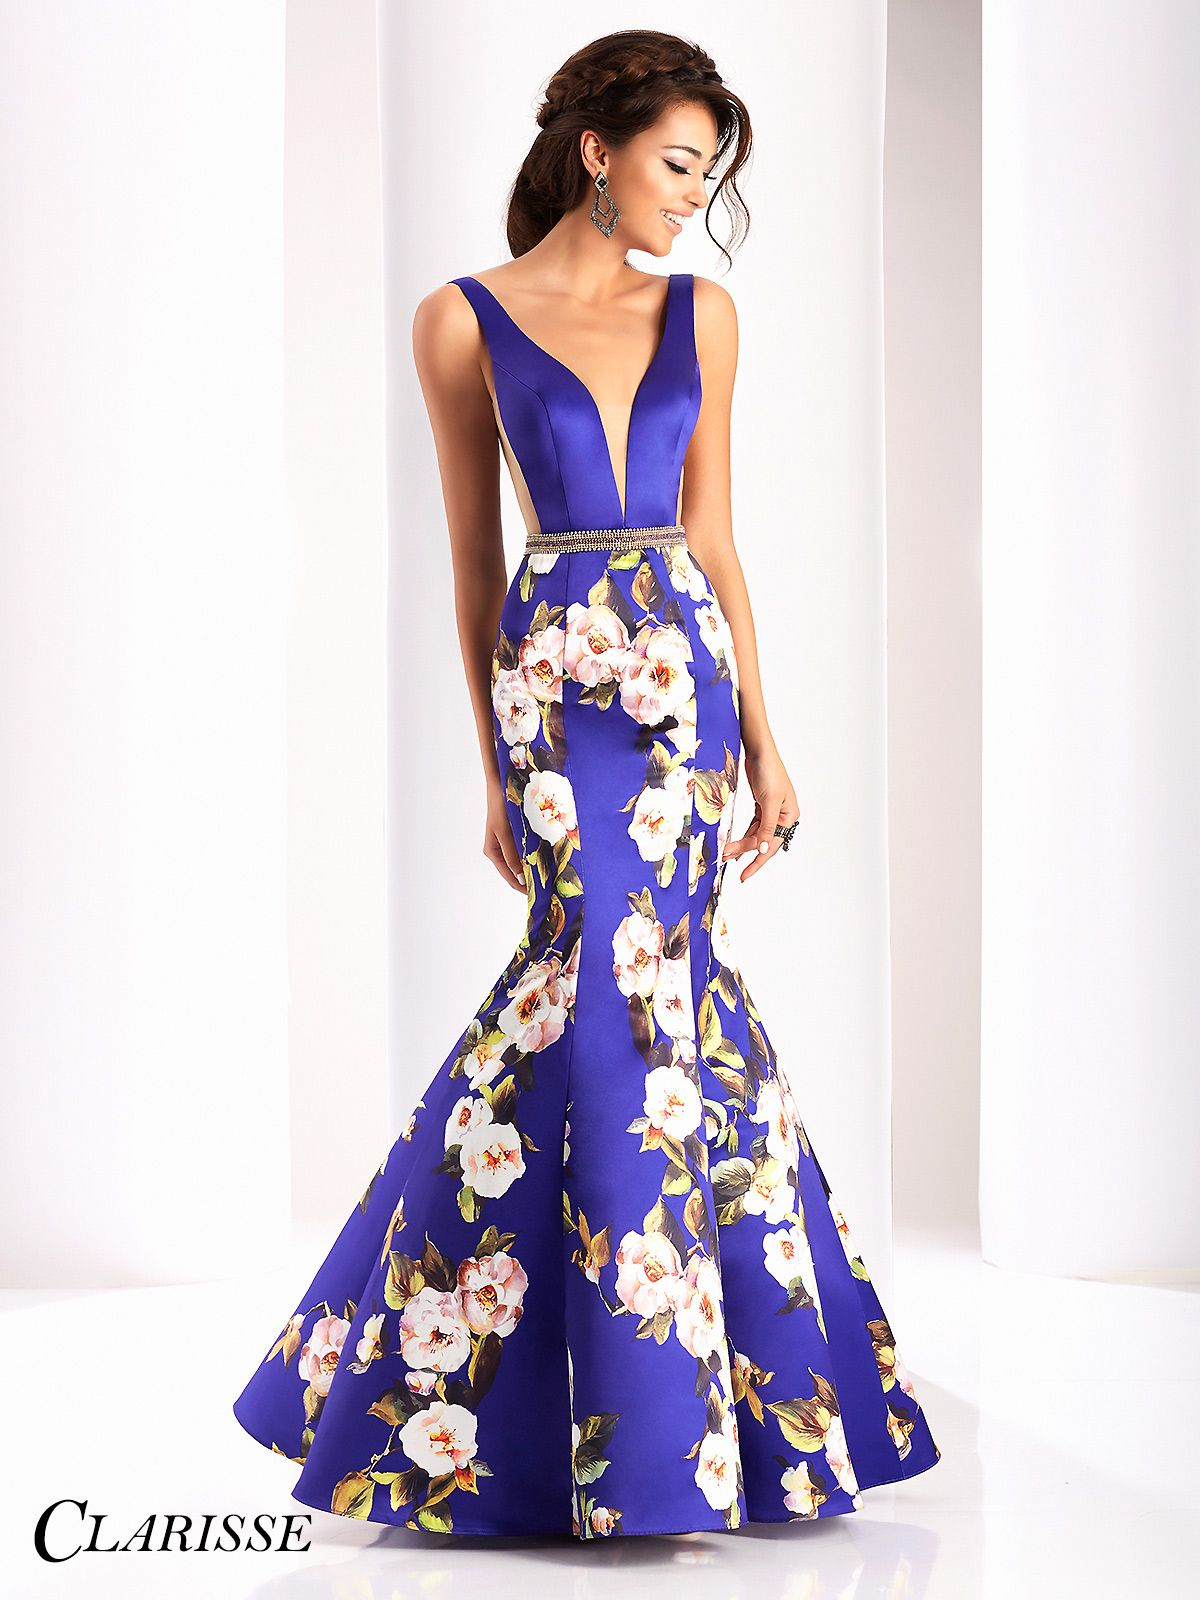 Clarisse Purple Floral Mermaid Prom Dress 4813